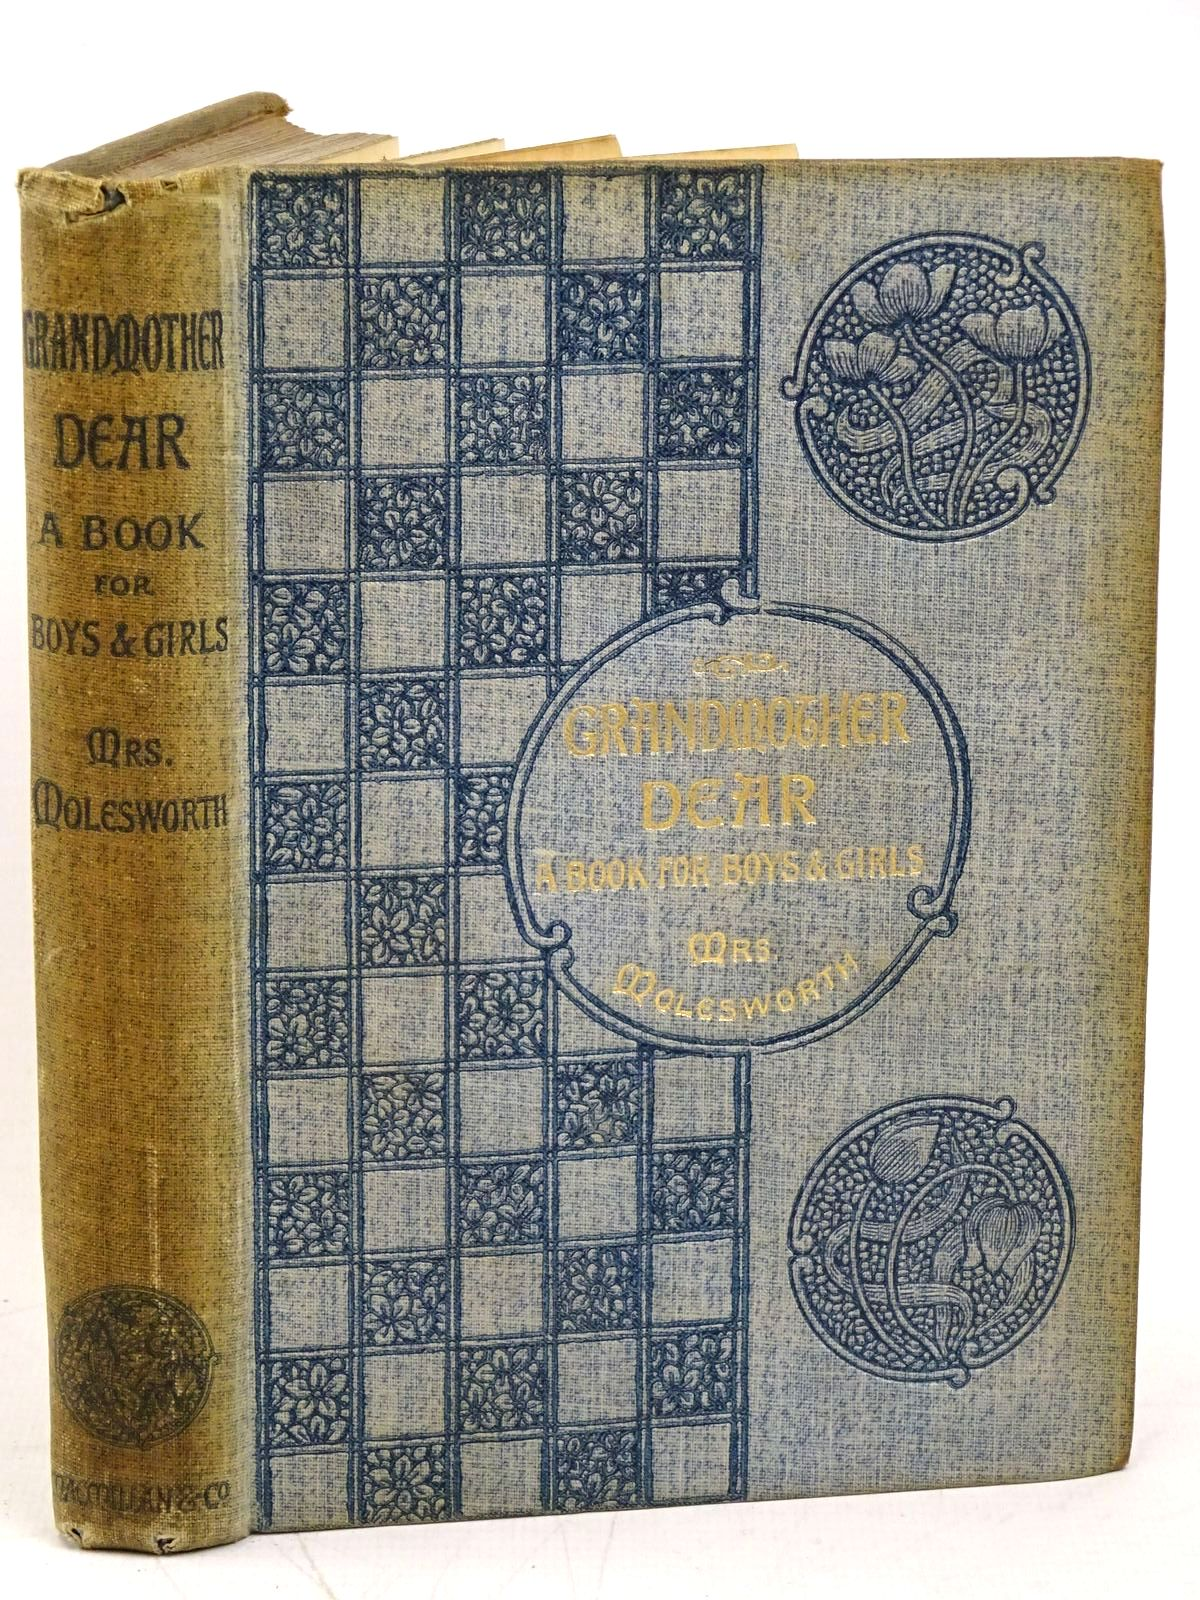 Photo of GRANDMOTHER DEAR written by Molesworth, Mrs. illustrated by Crane, Walter published by Macmillan & Co. (STOCK CODE: 1317965)  for sale by Stella & Rose's Books